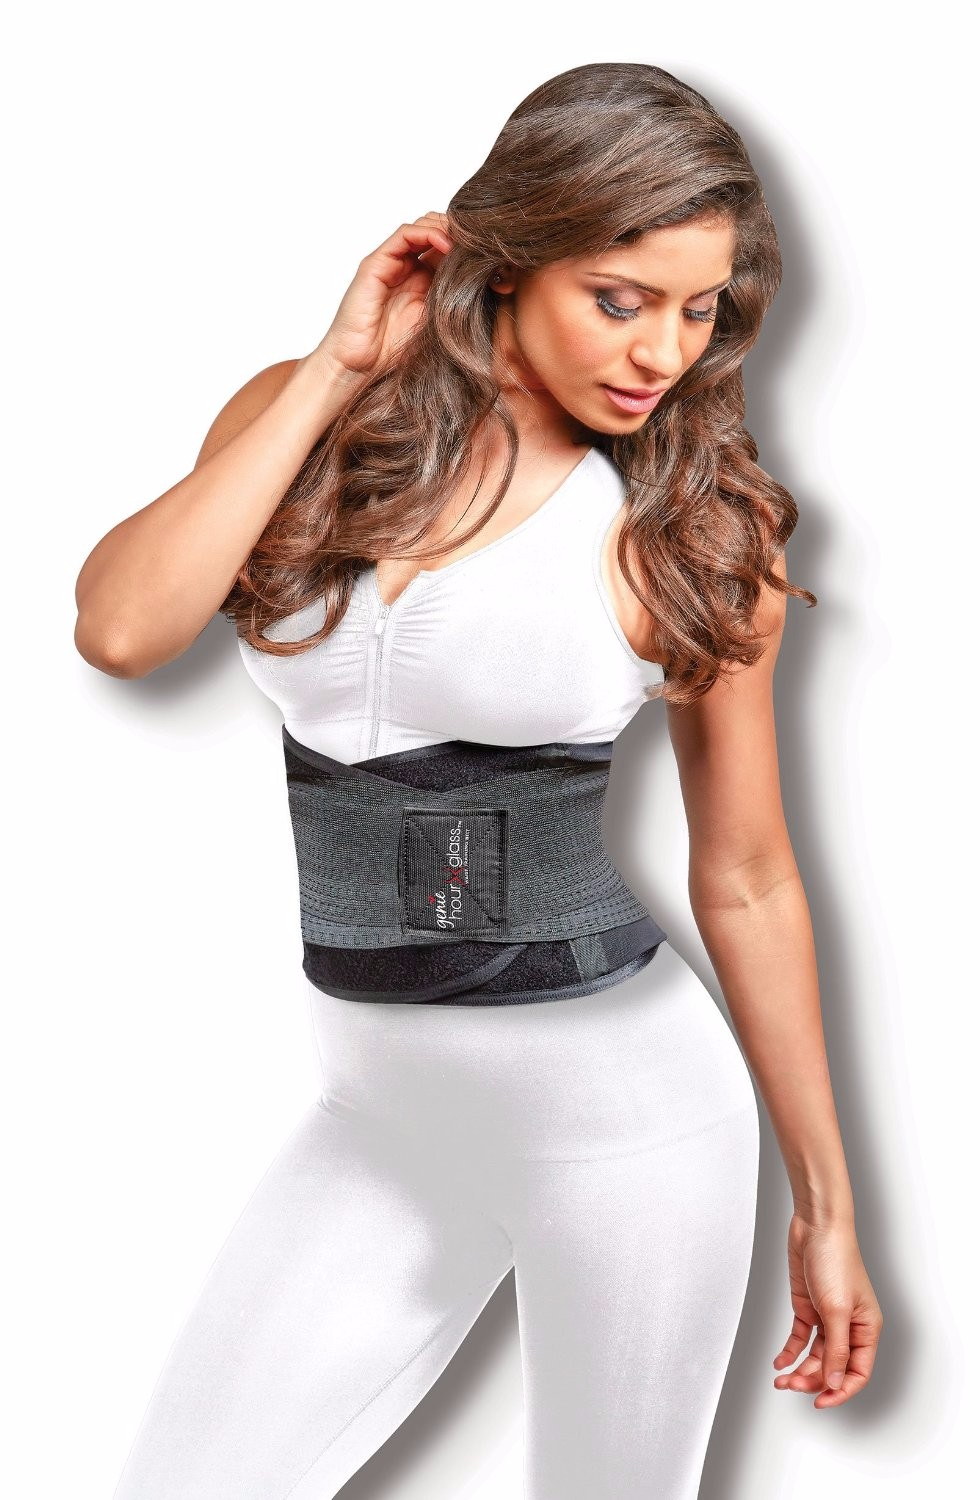 New Genie Hourglass Slimming Belt With Body Shaper Waist Miss Korset Pelangsing Instant Shape Perut Trainer